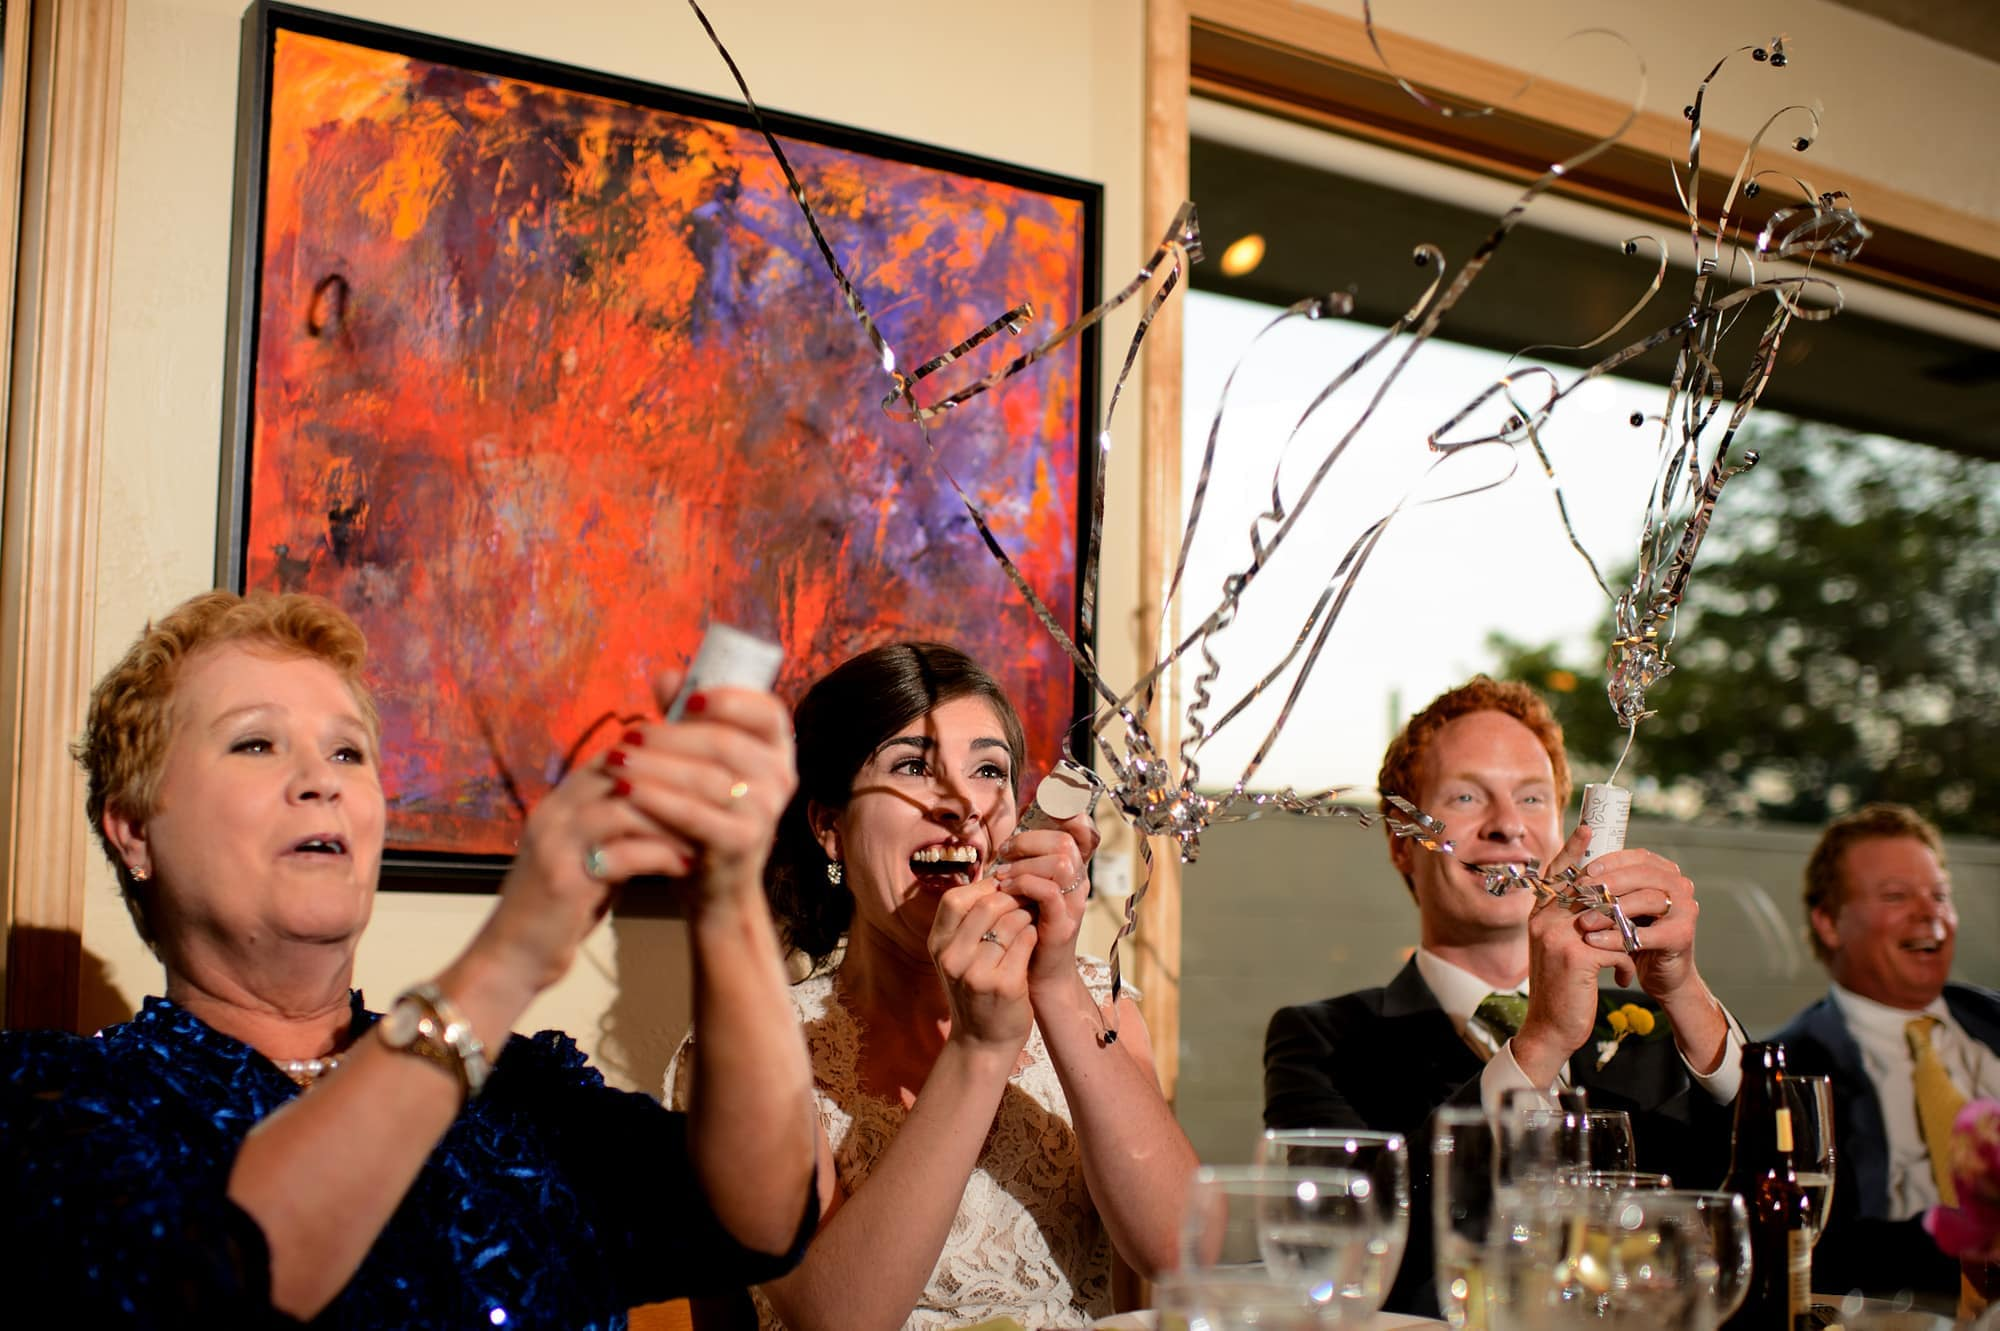 Streamers fly during toasts at the wedding reception in Boulder